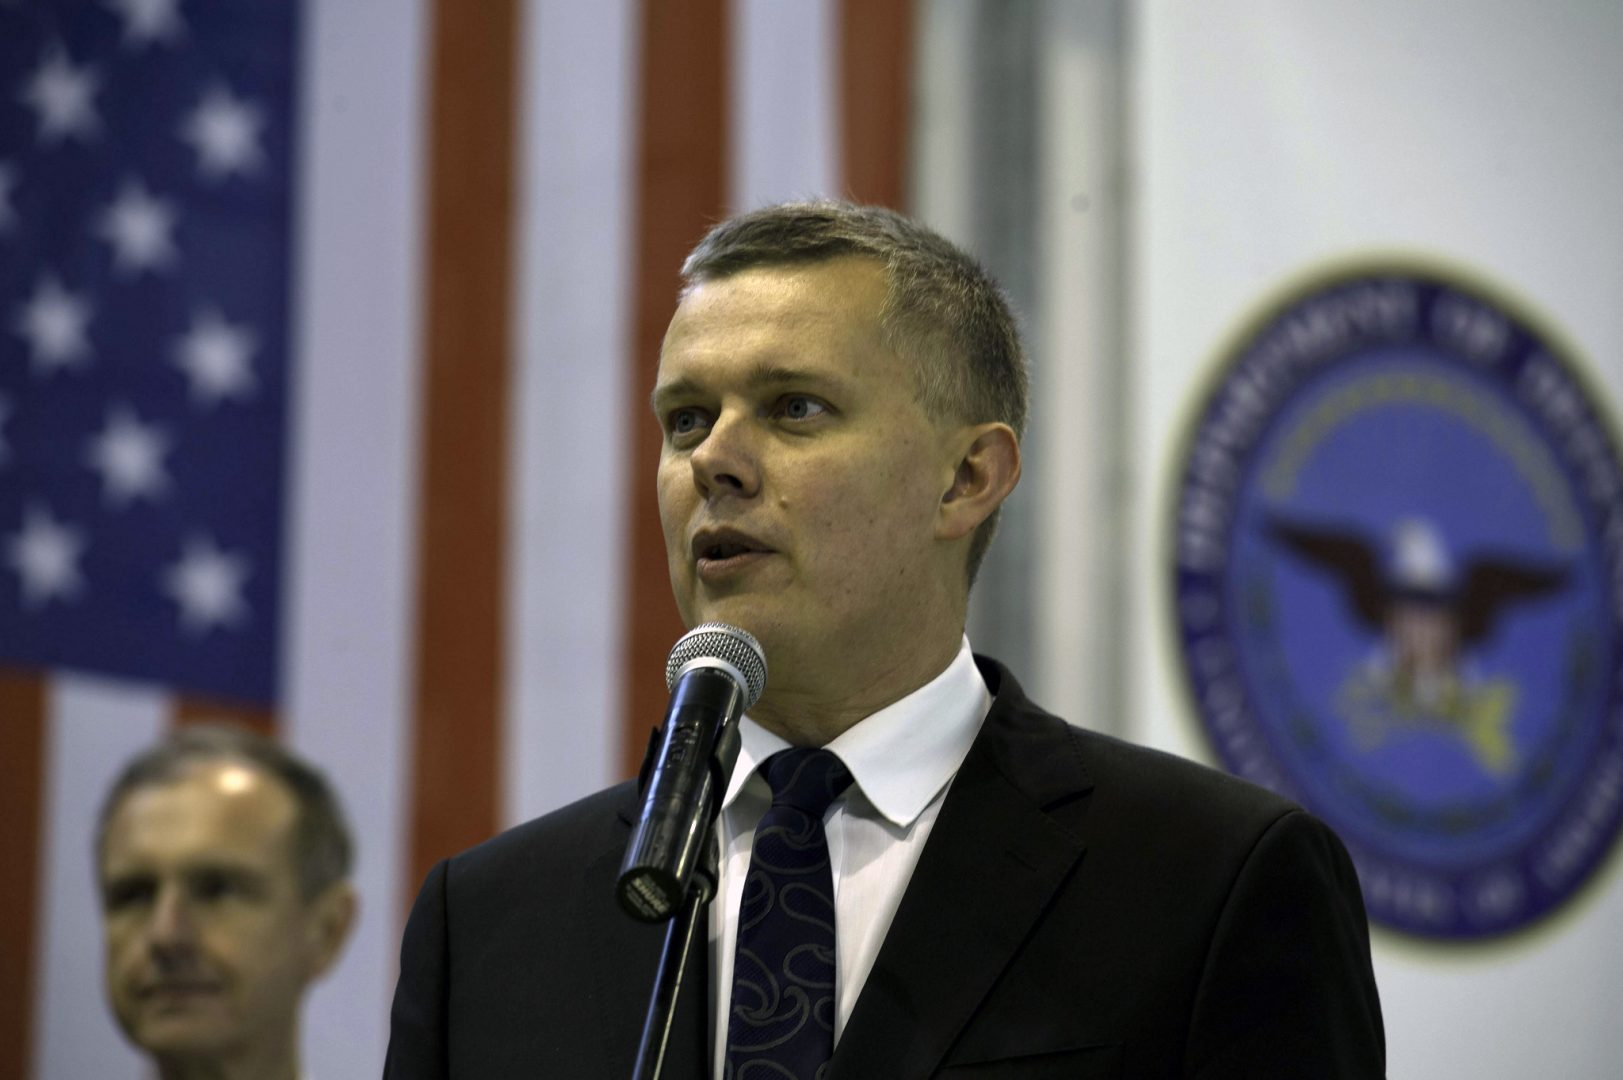 Tomasz Siemoniak/ U.S. Air Force photo by Tech. Sgt. Araceli Alarcon/CC BY 2.0/Flickr